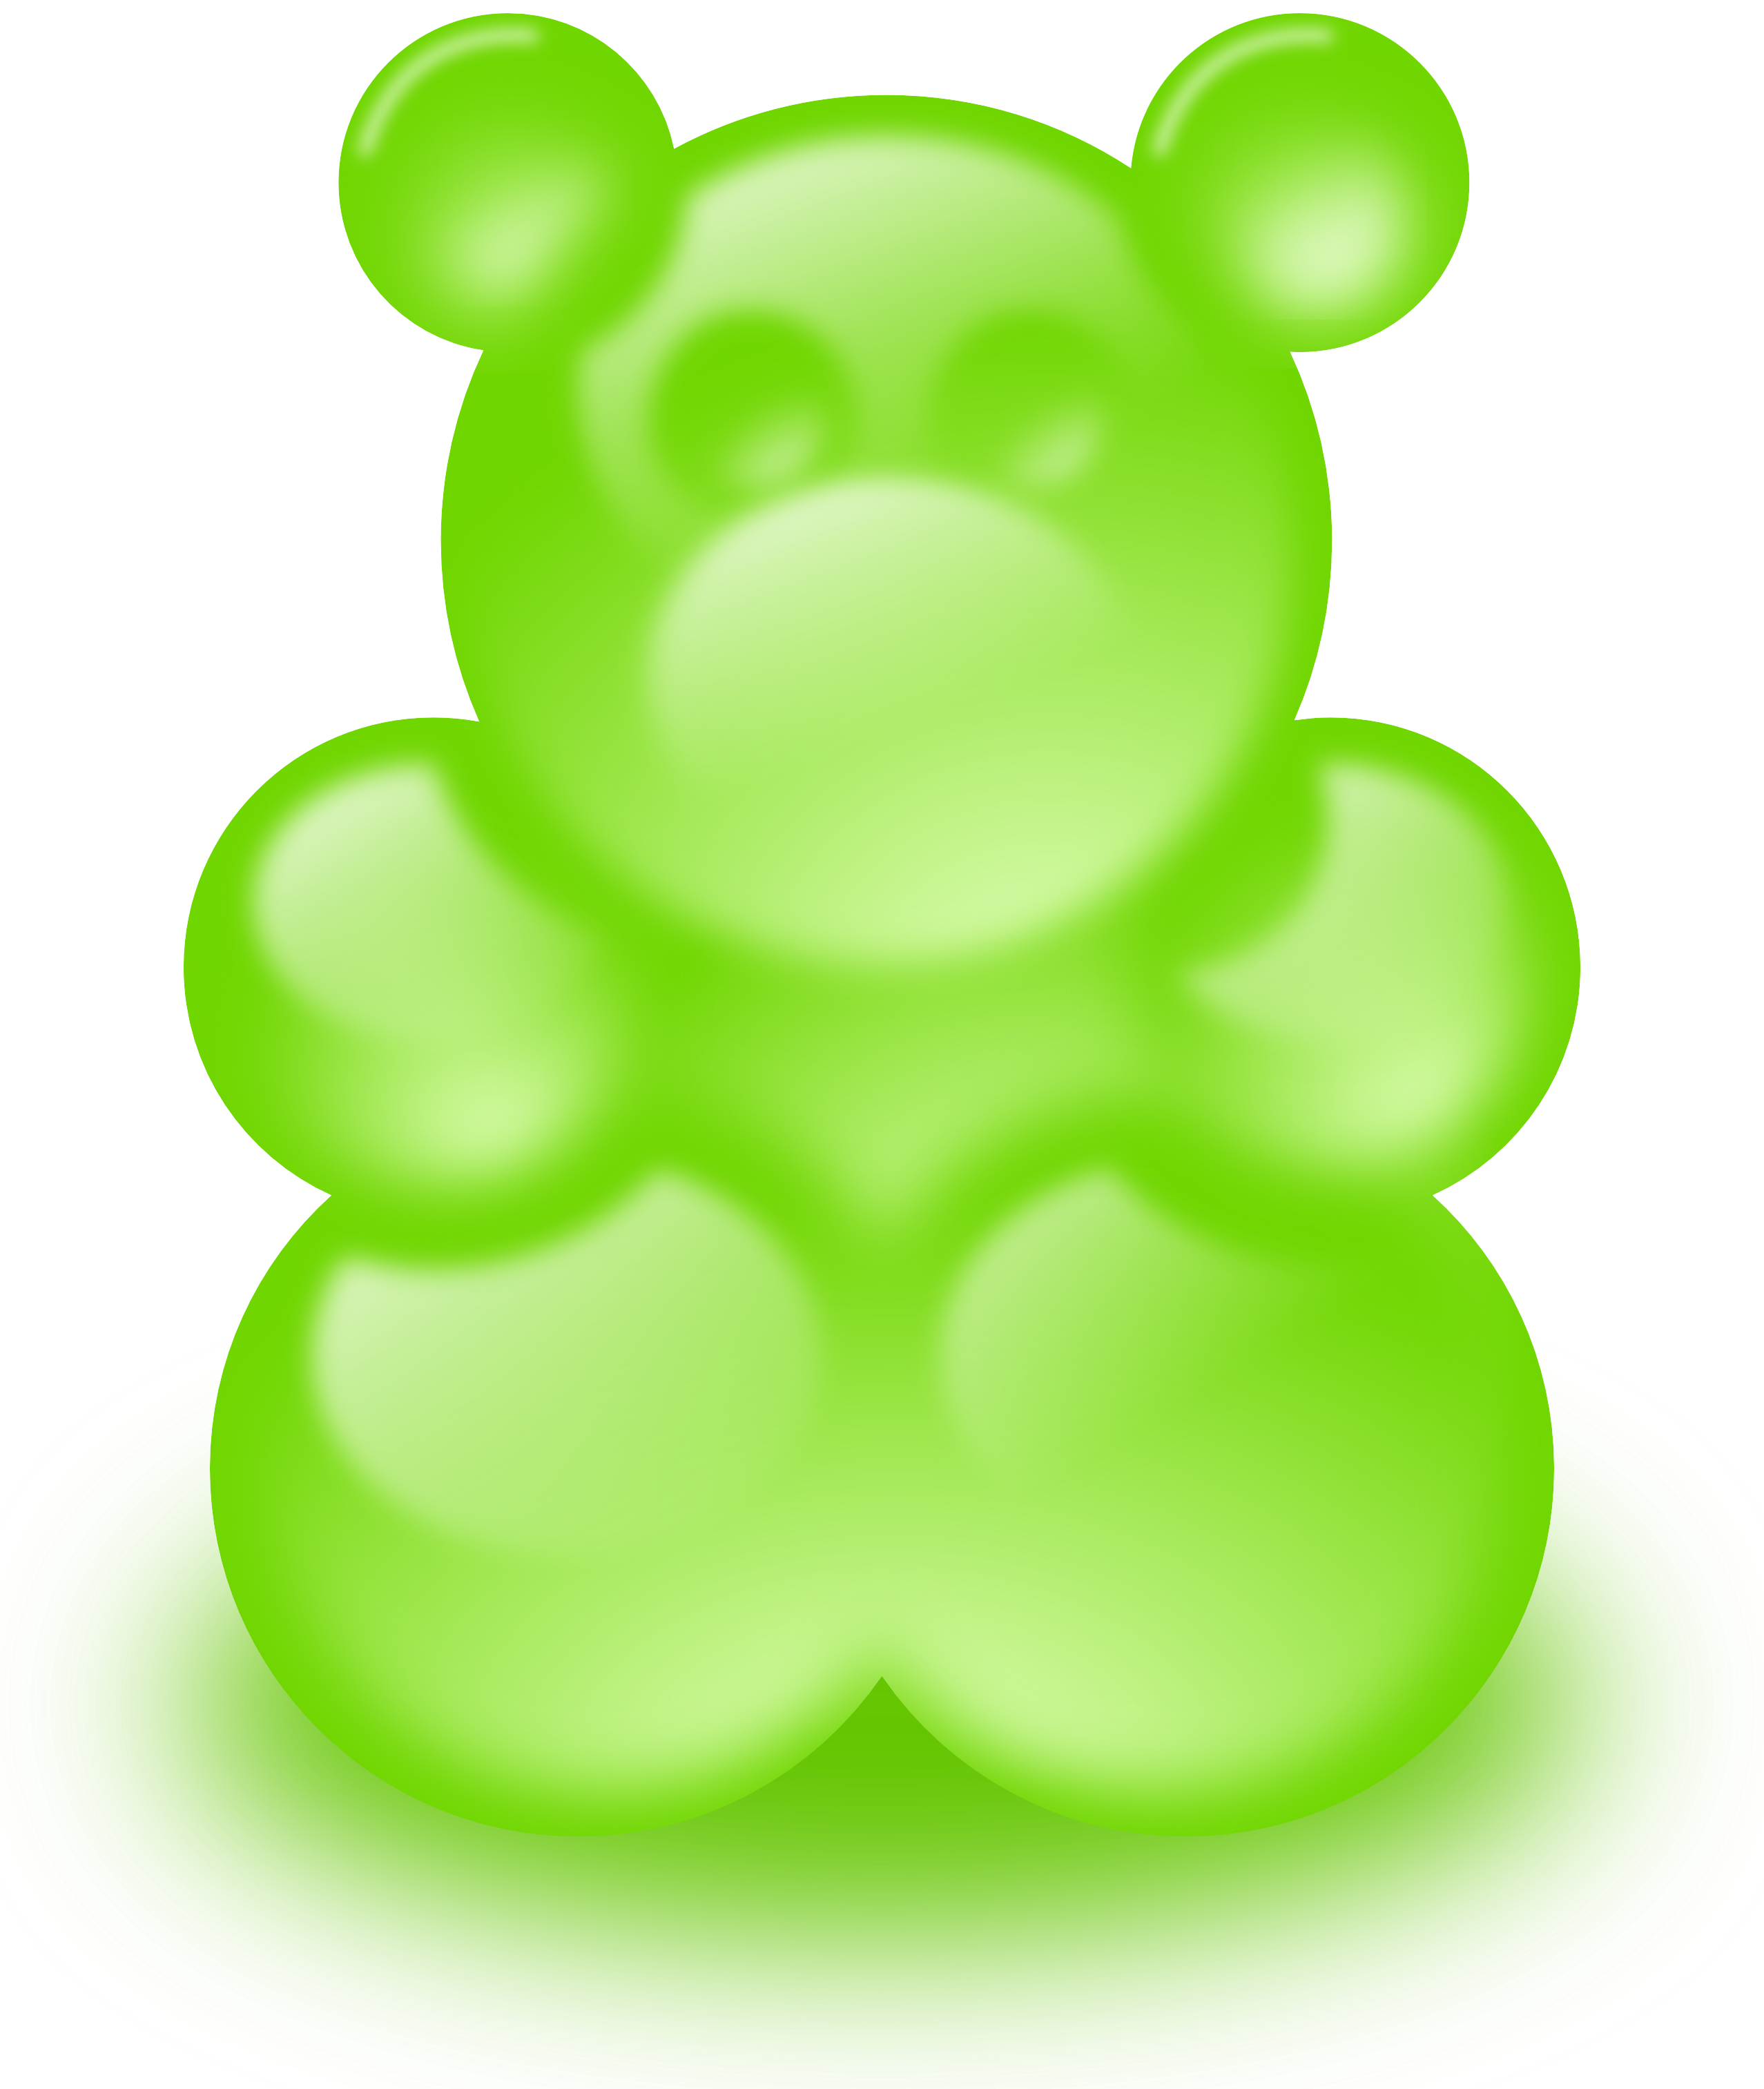 Gummy Bear Clipart #1-Gummy Bear Clipart #1-8